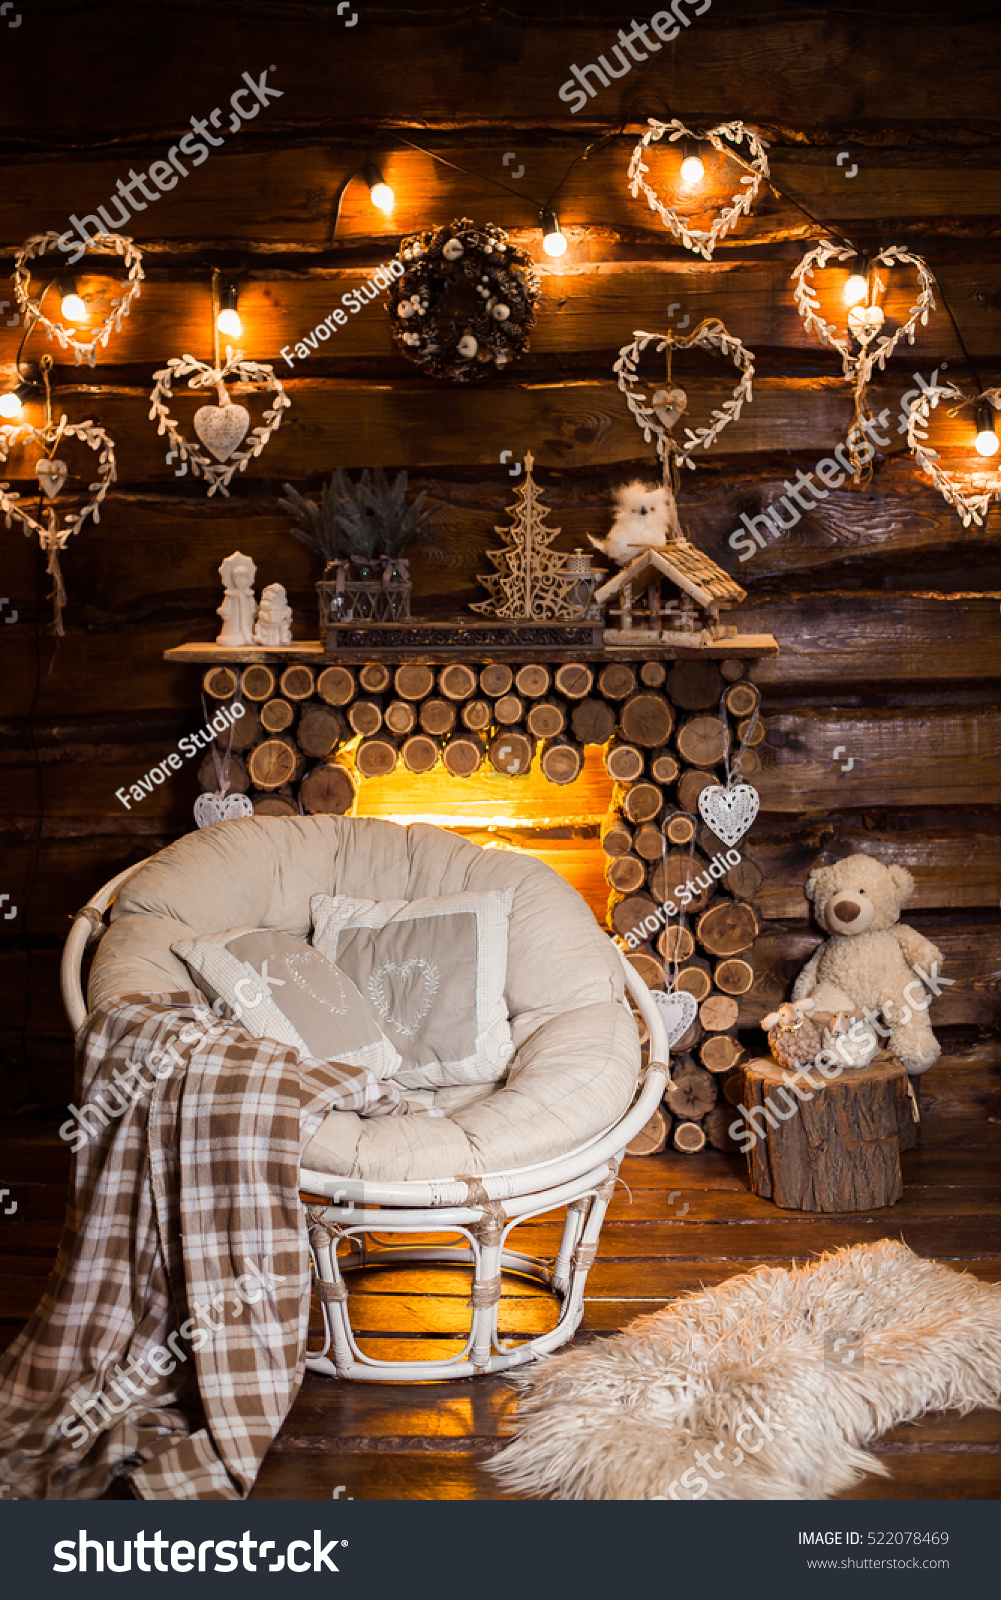 Cozy Papasan Chair At The Center Of Wooden Room Evening Bulb Light Garland  Above The Wooden Part 83